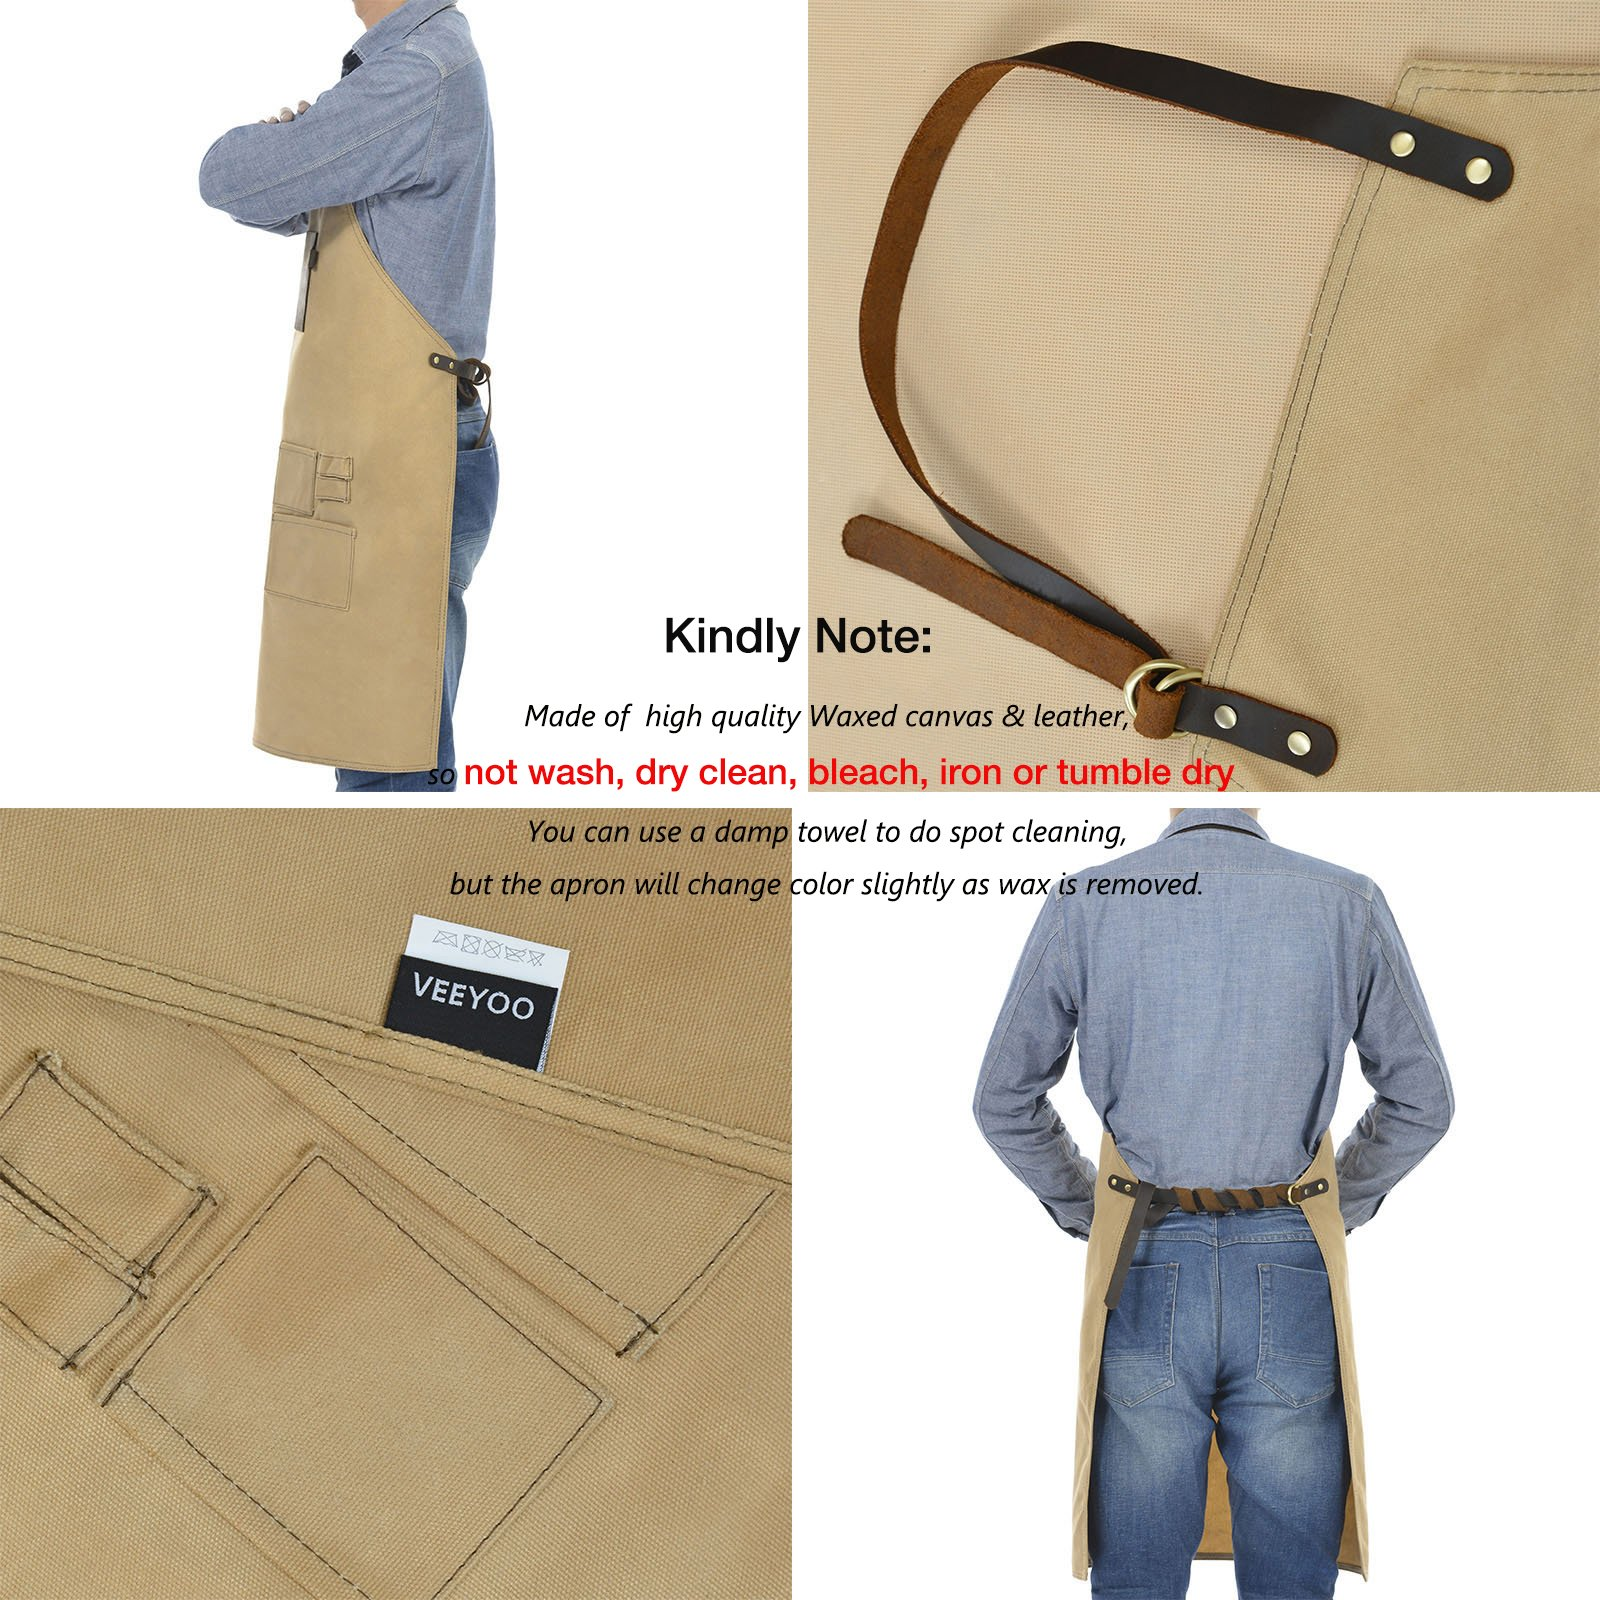 VEEYOO Heavy Duty Waxed Canvas Utility Apron with Pockets, Adjustable Shop Work Tool Welding Apron for Men and Women, Tan, 27x34 inches by VEEYOO (Image #6)